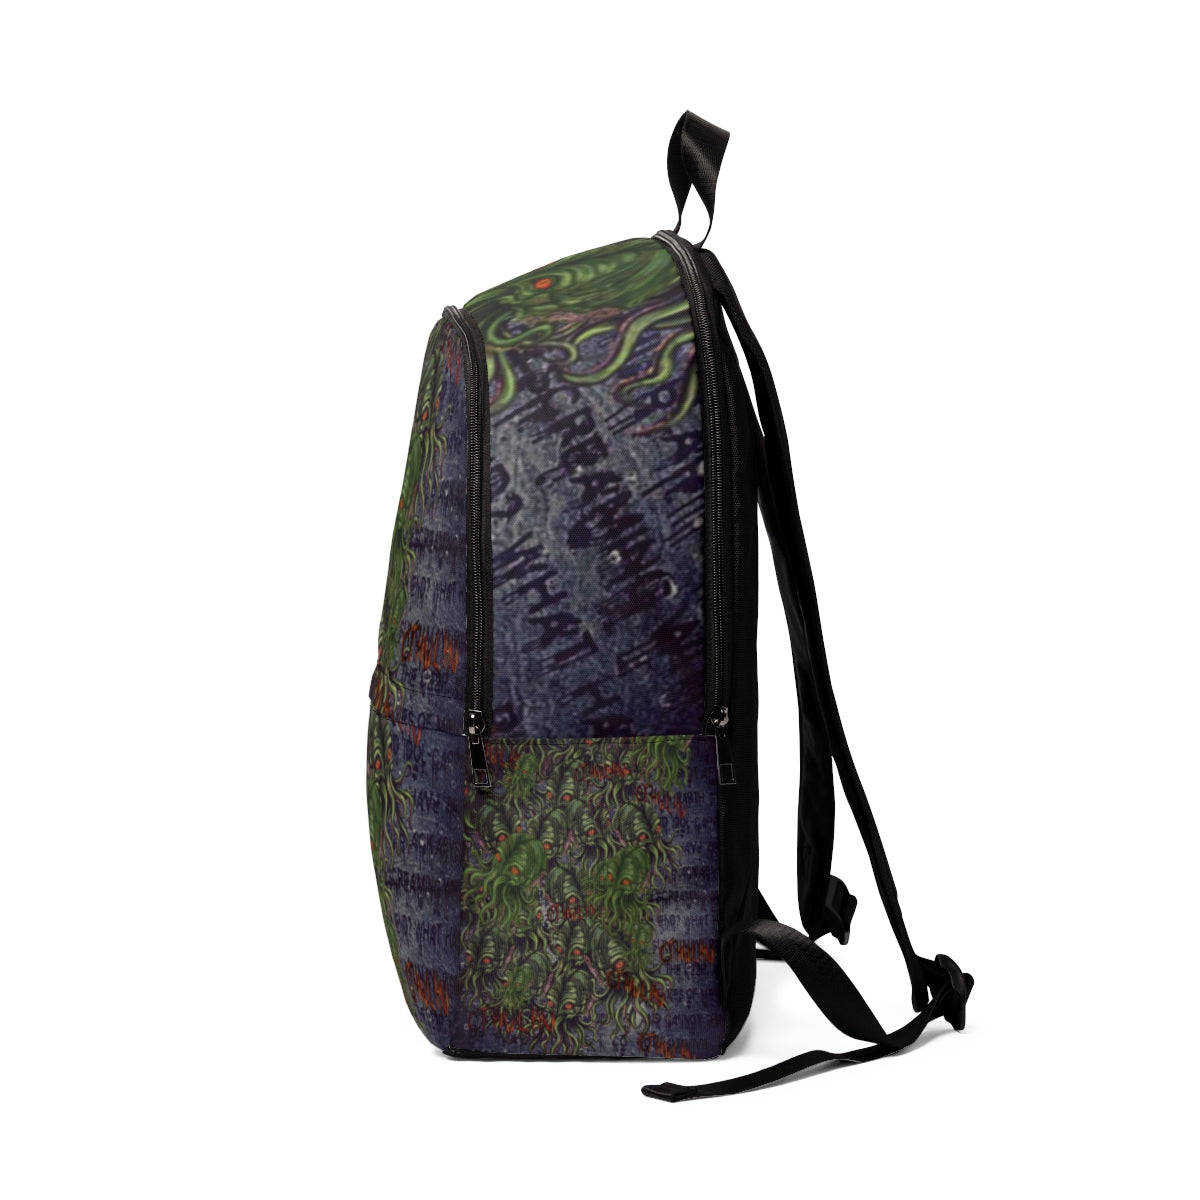 Cthulhu Backpack-Starry Meadows